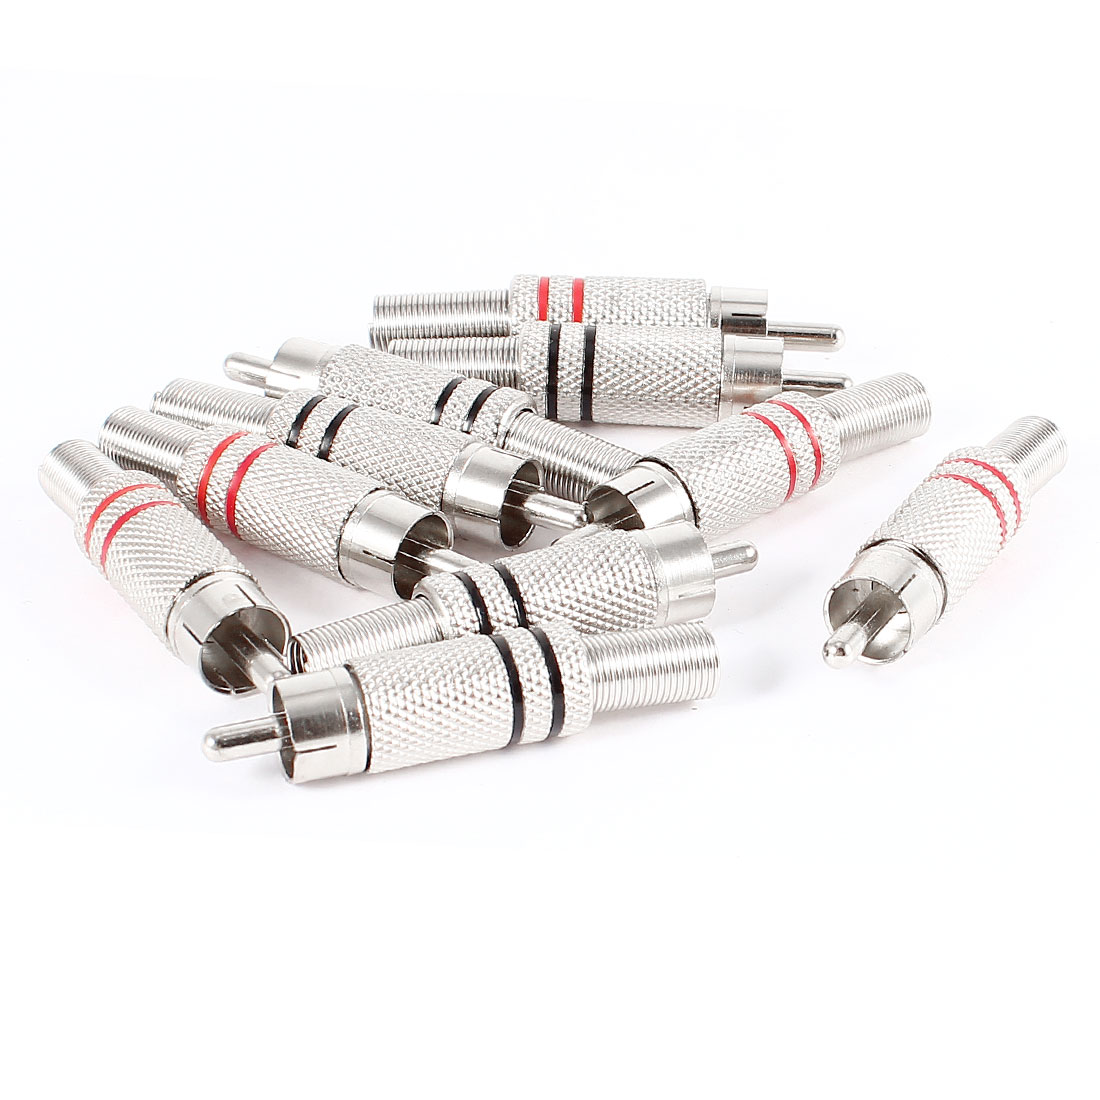 10 Pcs Silver Tone Alloy Spring Locking RCA Male Straight Couplers Audio Adapter